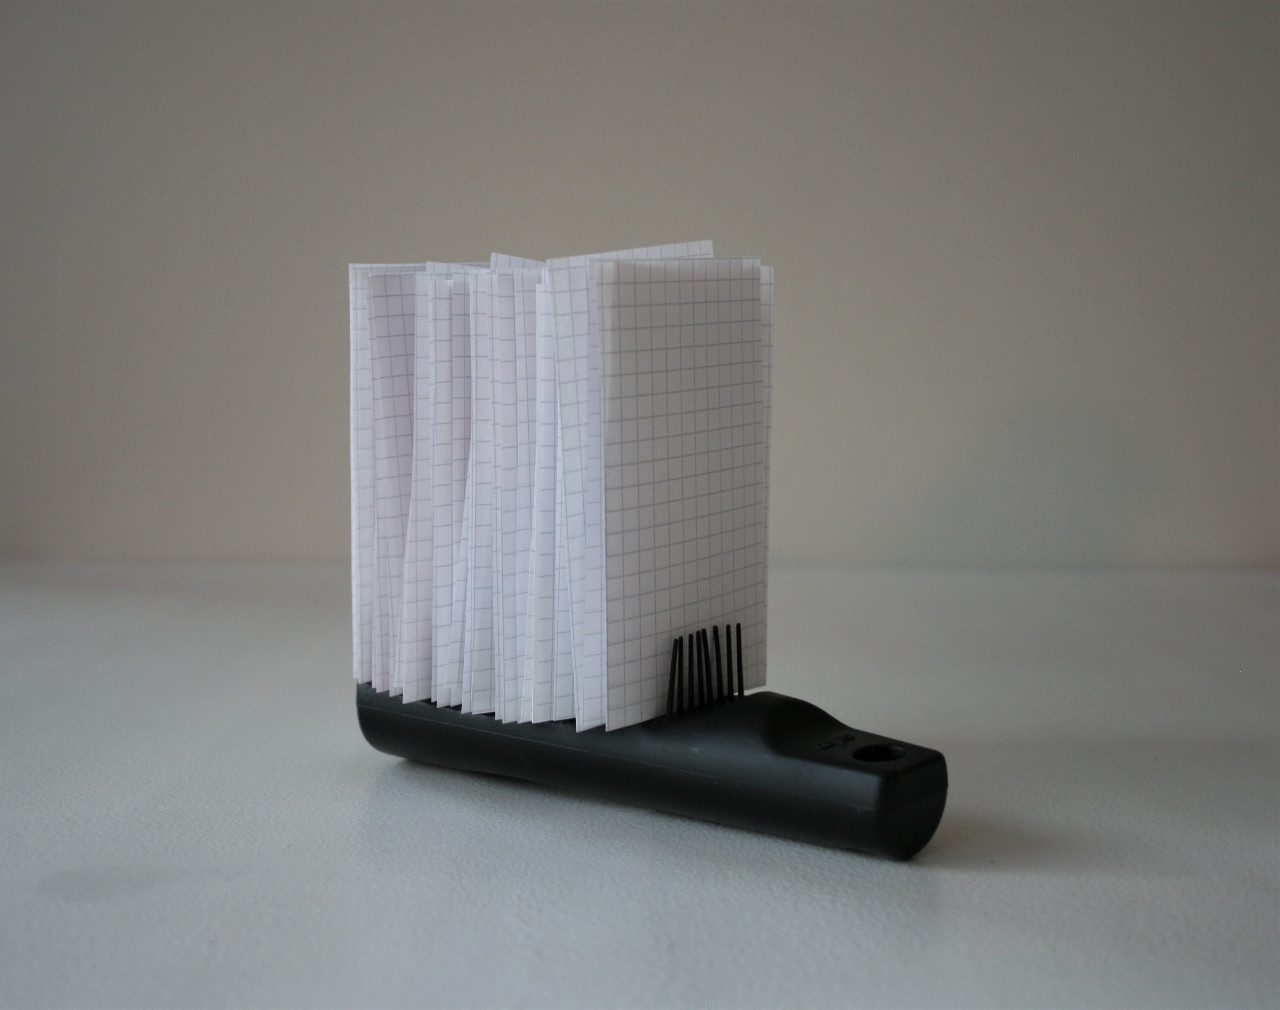 Hair brush and slips of squared paper (2020)